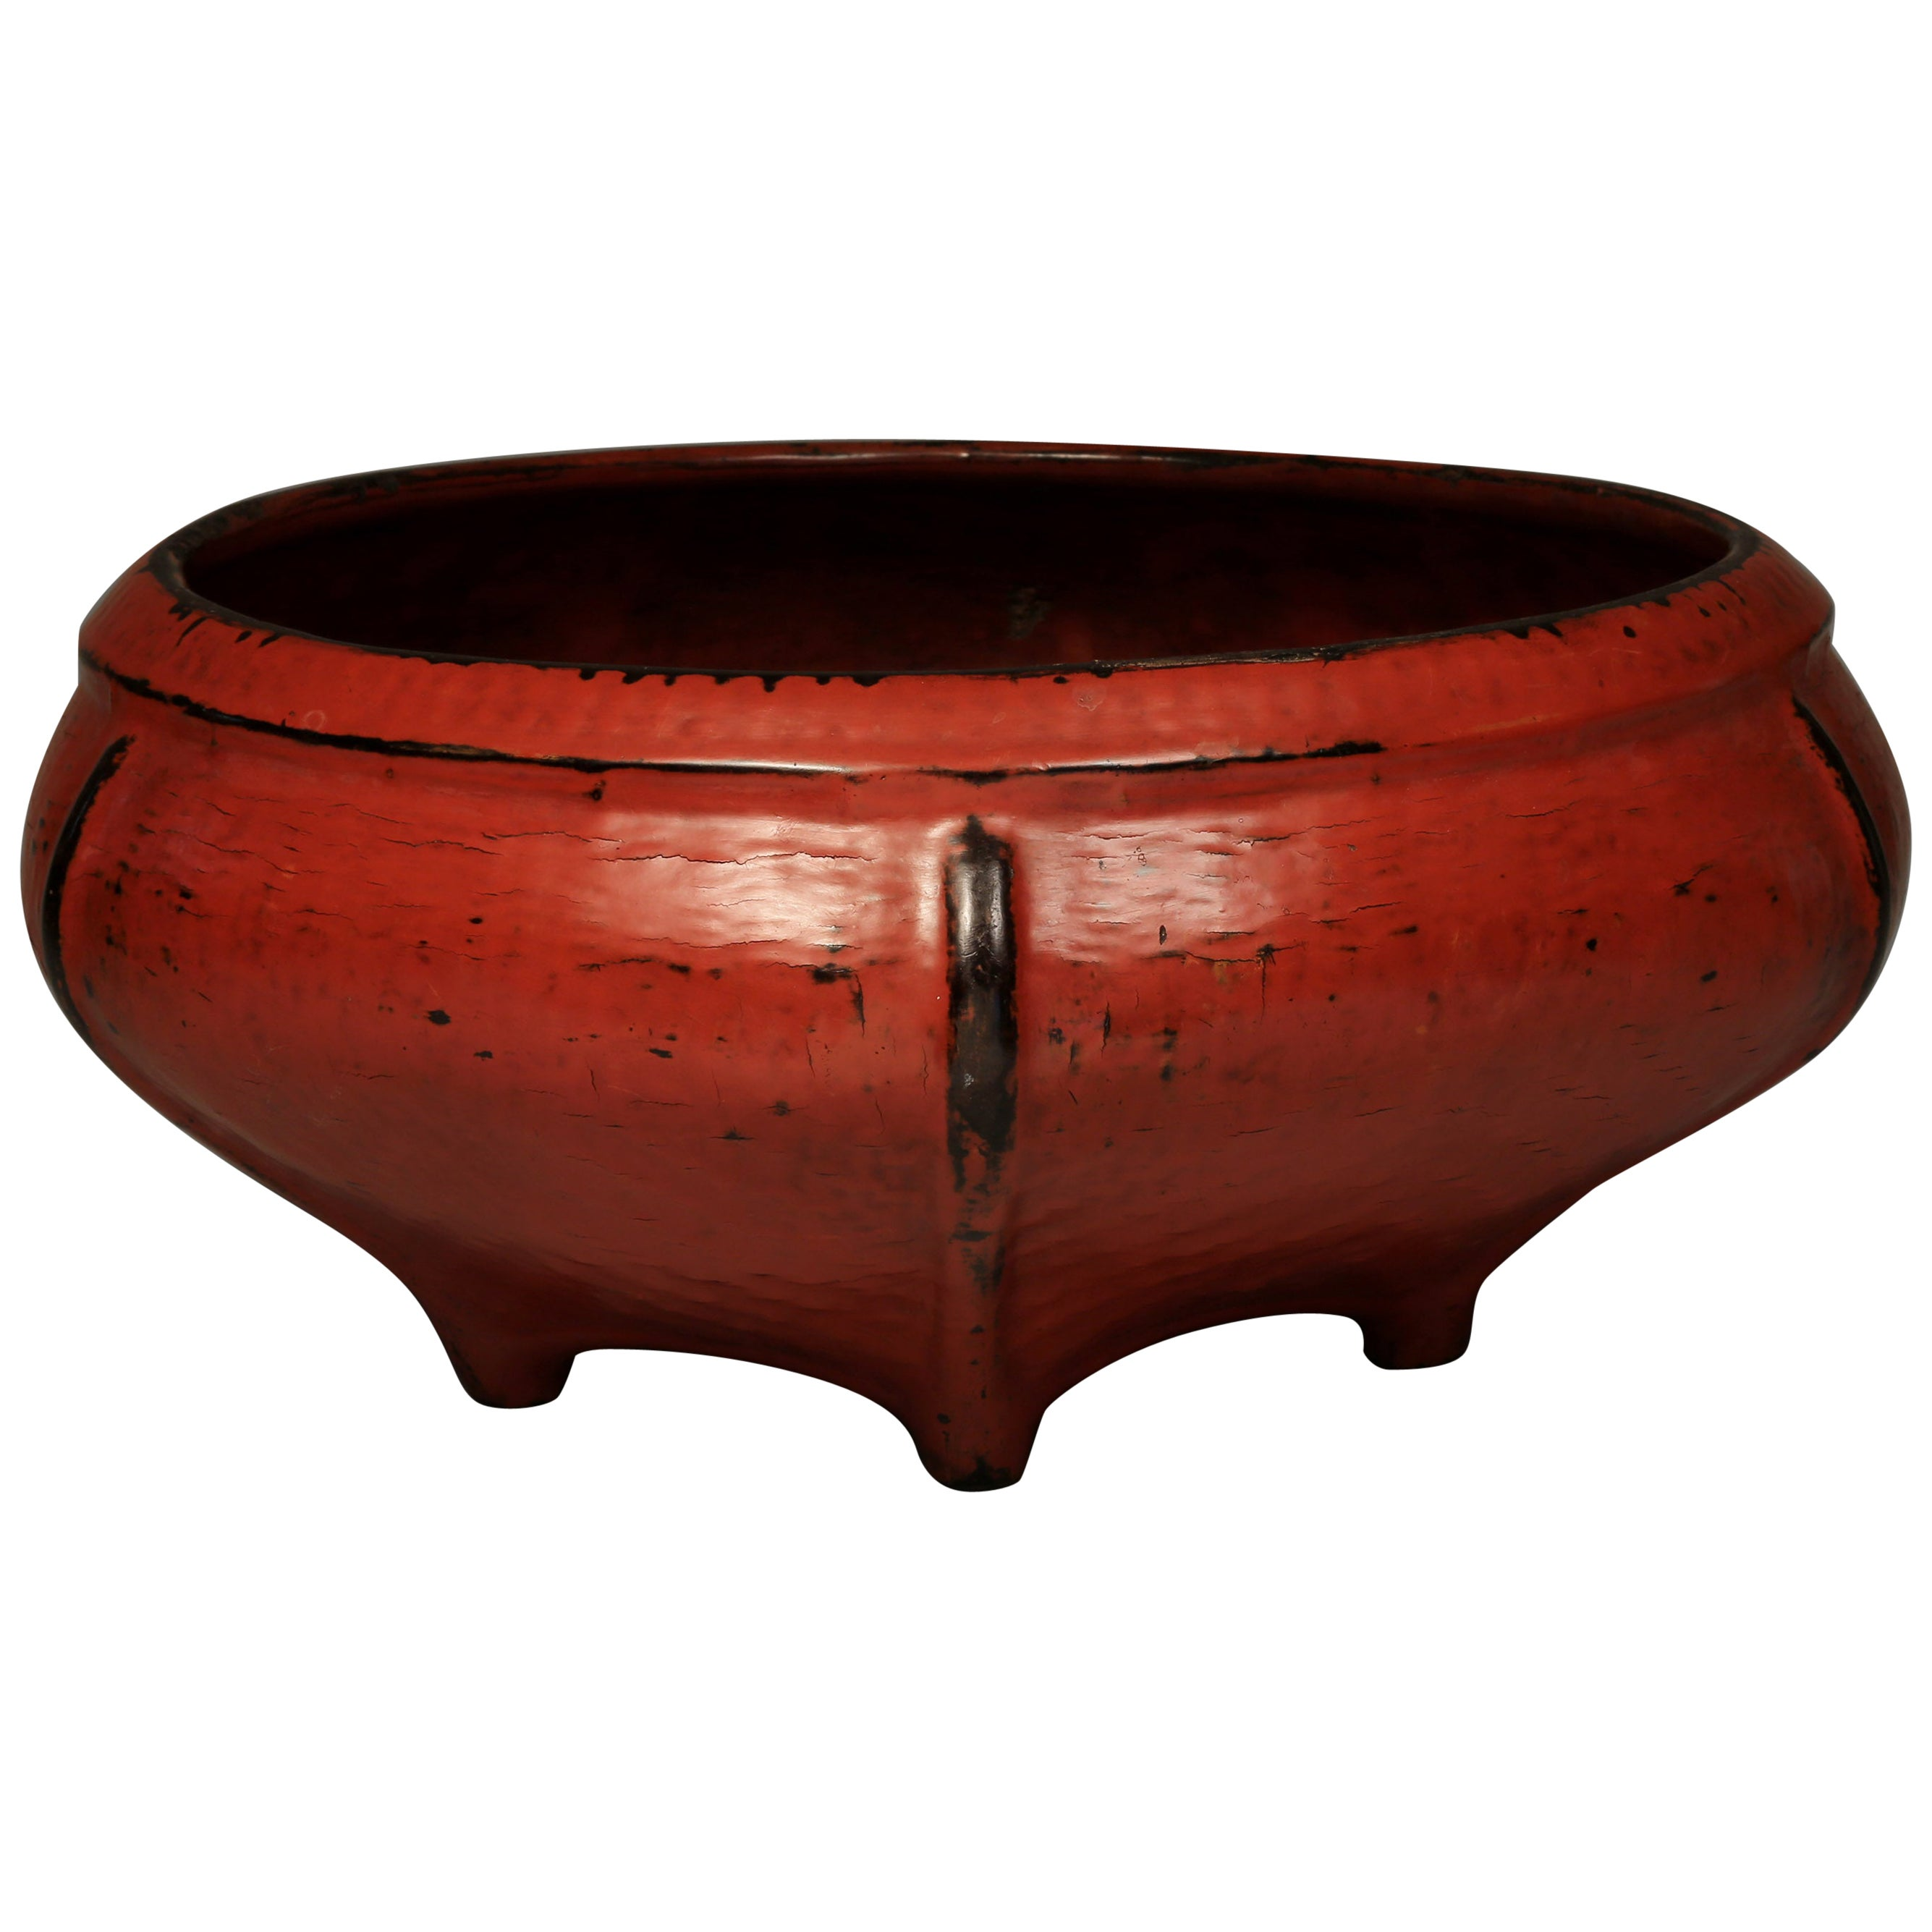 Red Lacquered Offering Bowl, Burma, Early 20th Century